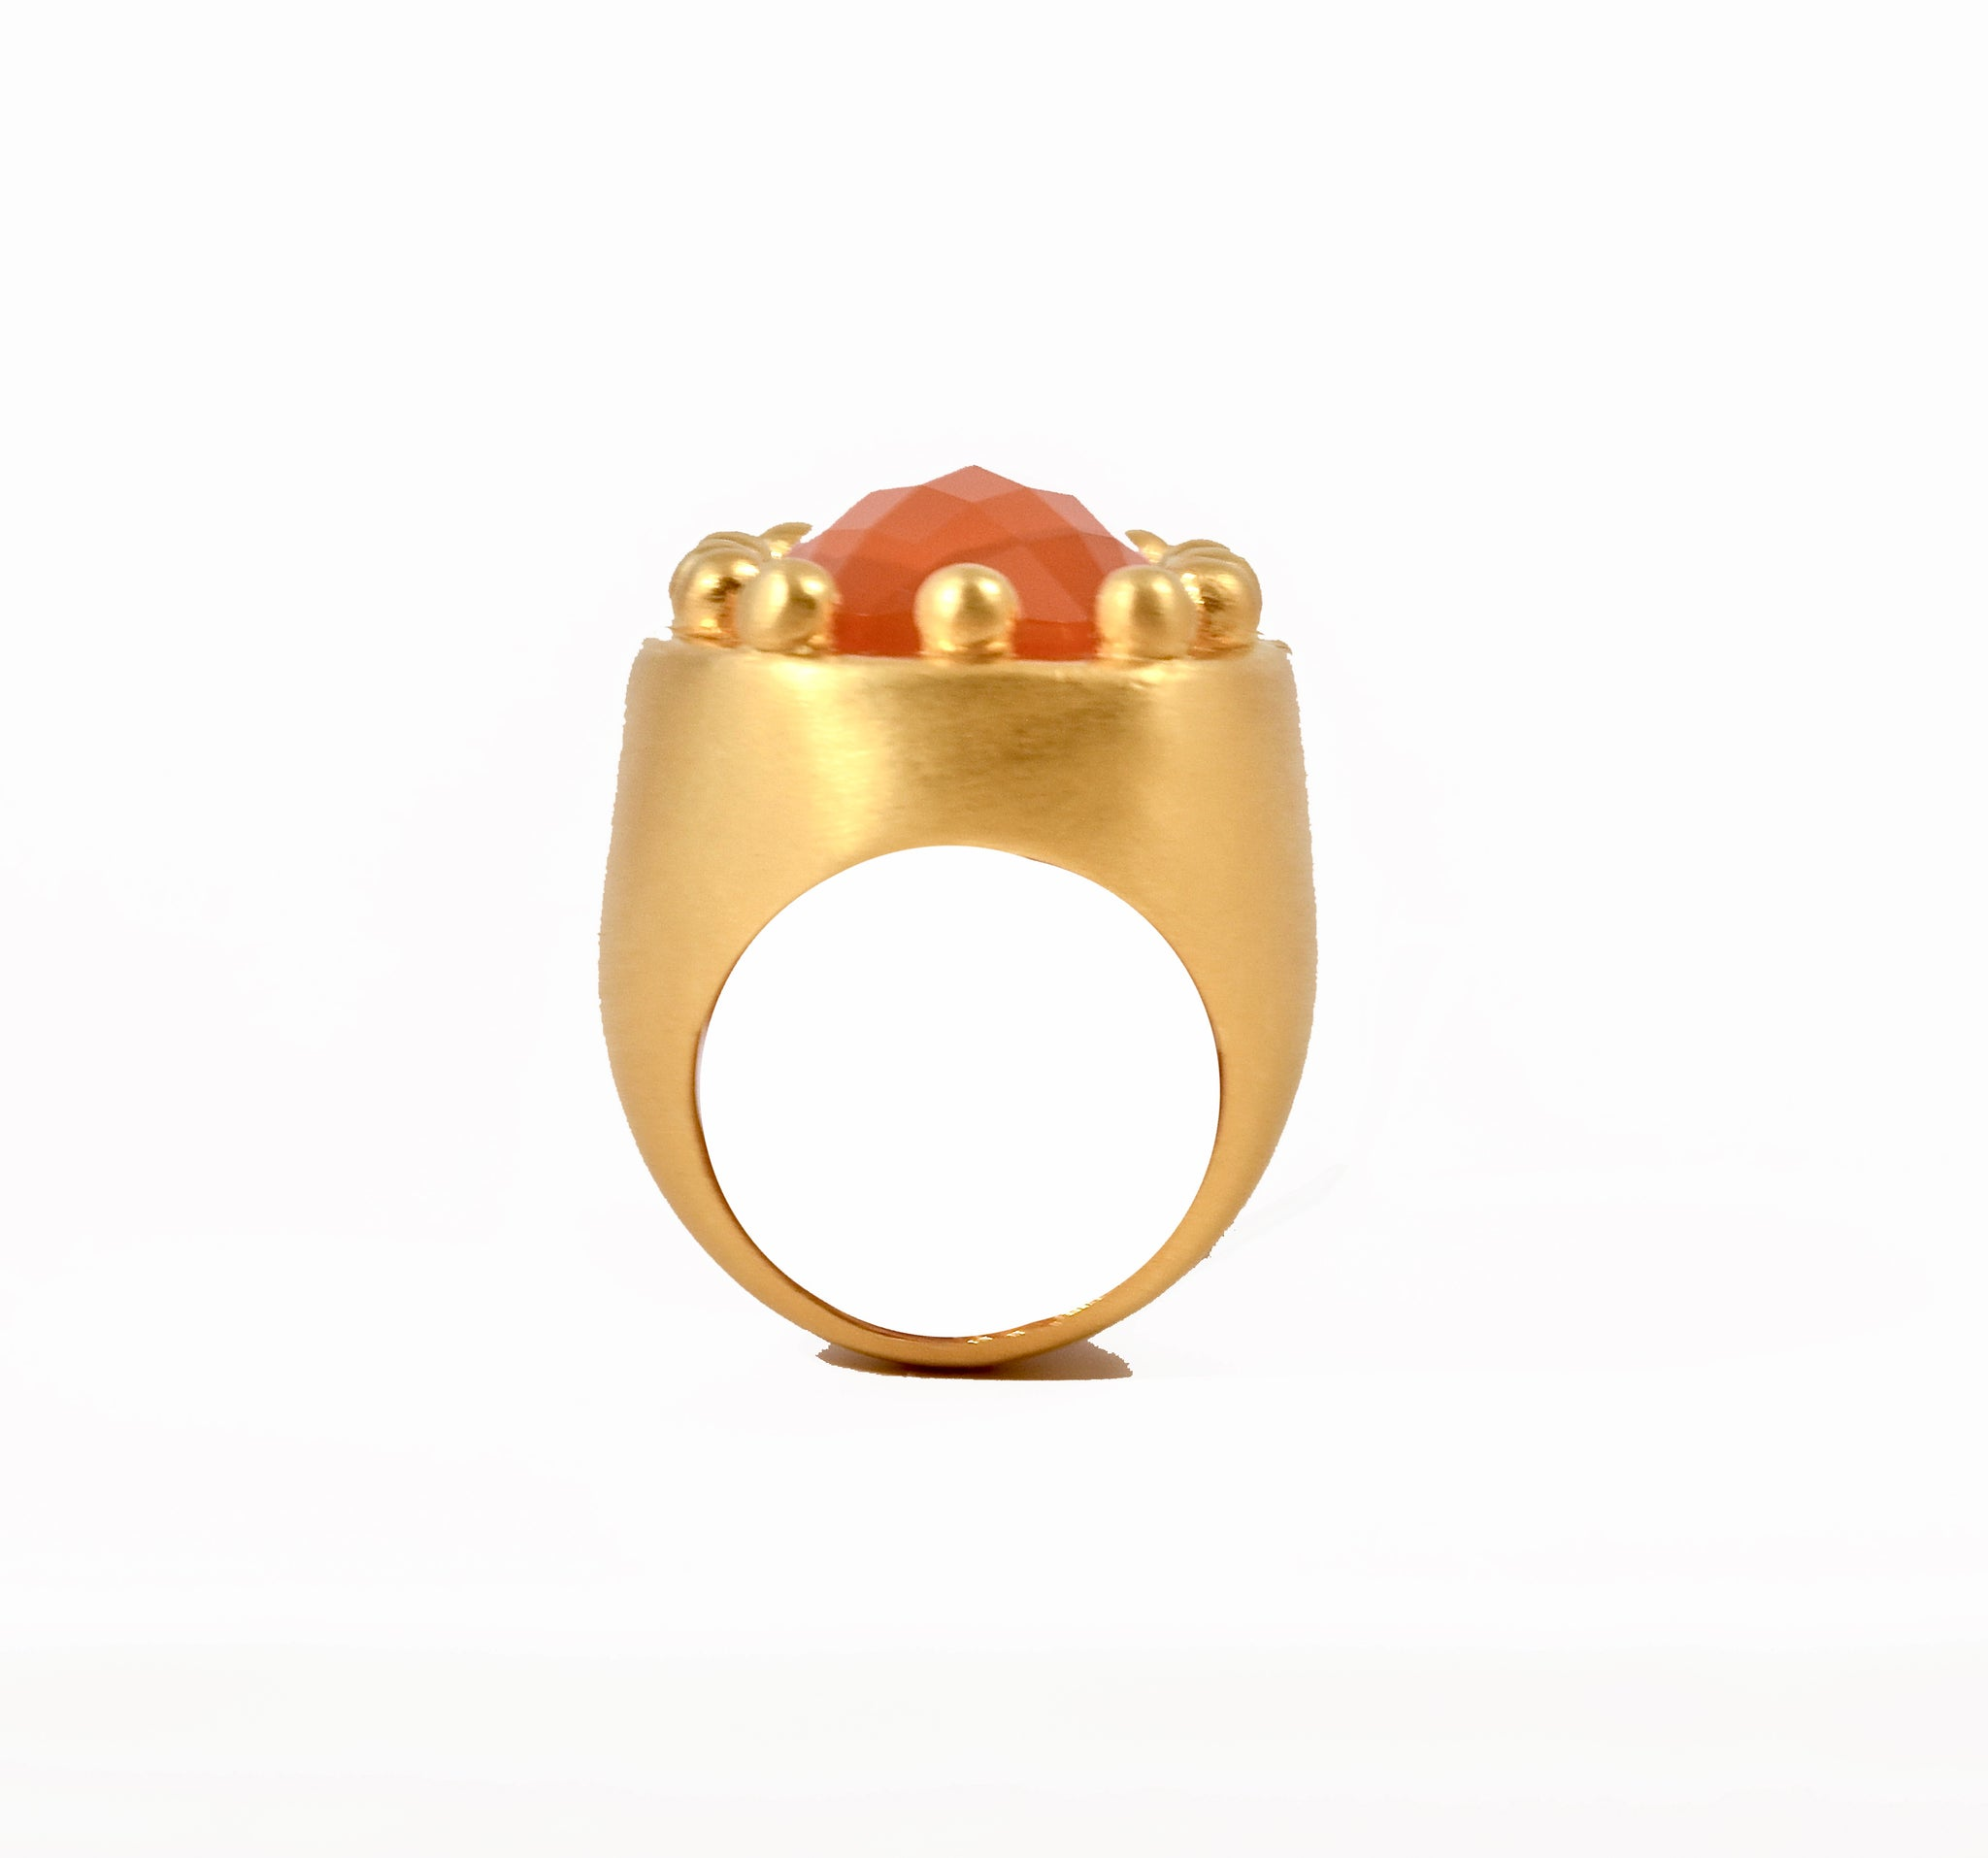 Venezia Statement Ring - AmatoStyle